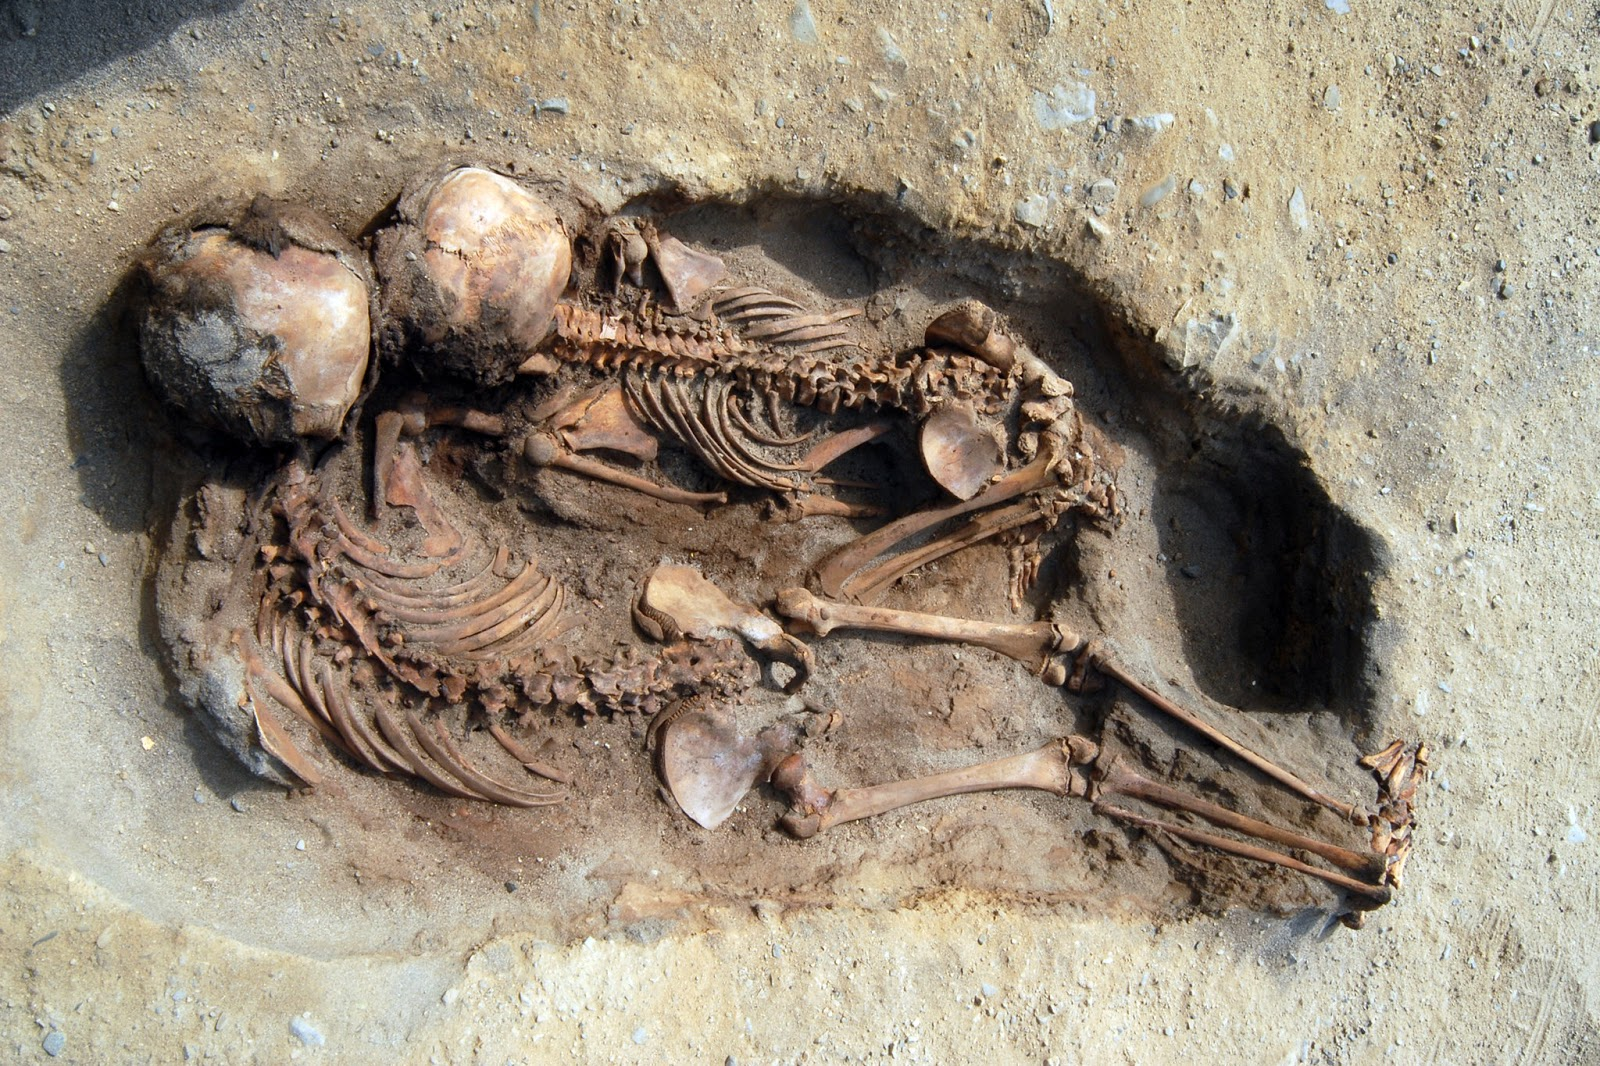 Children skeletons found in Peru. Photo:  John Verano/The New York Times